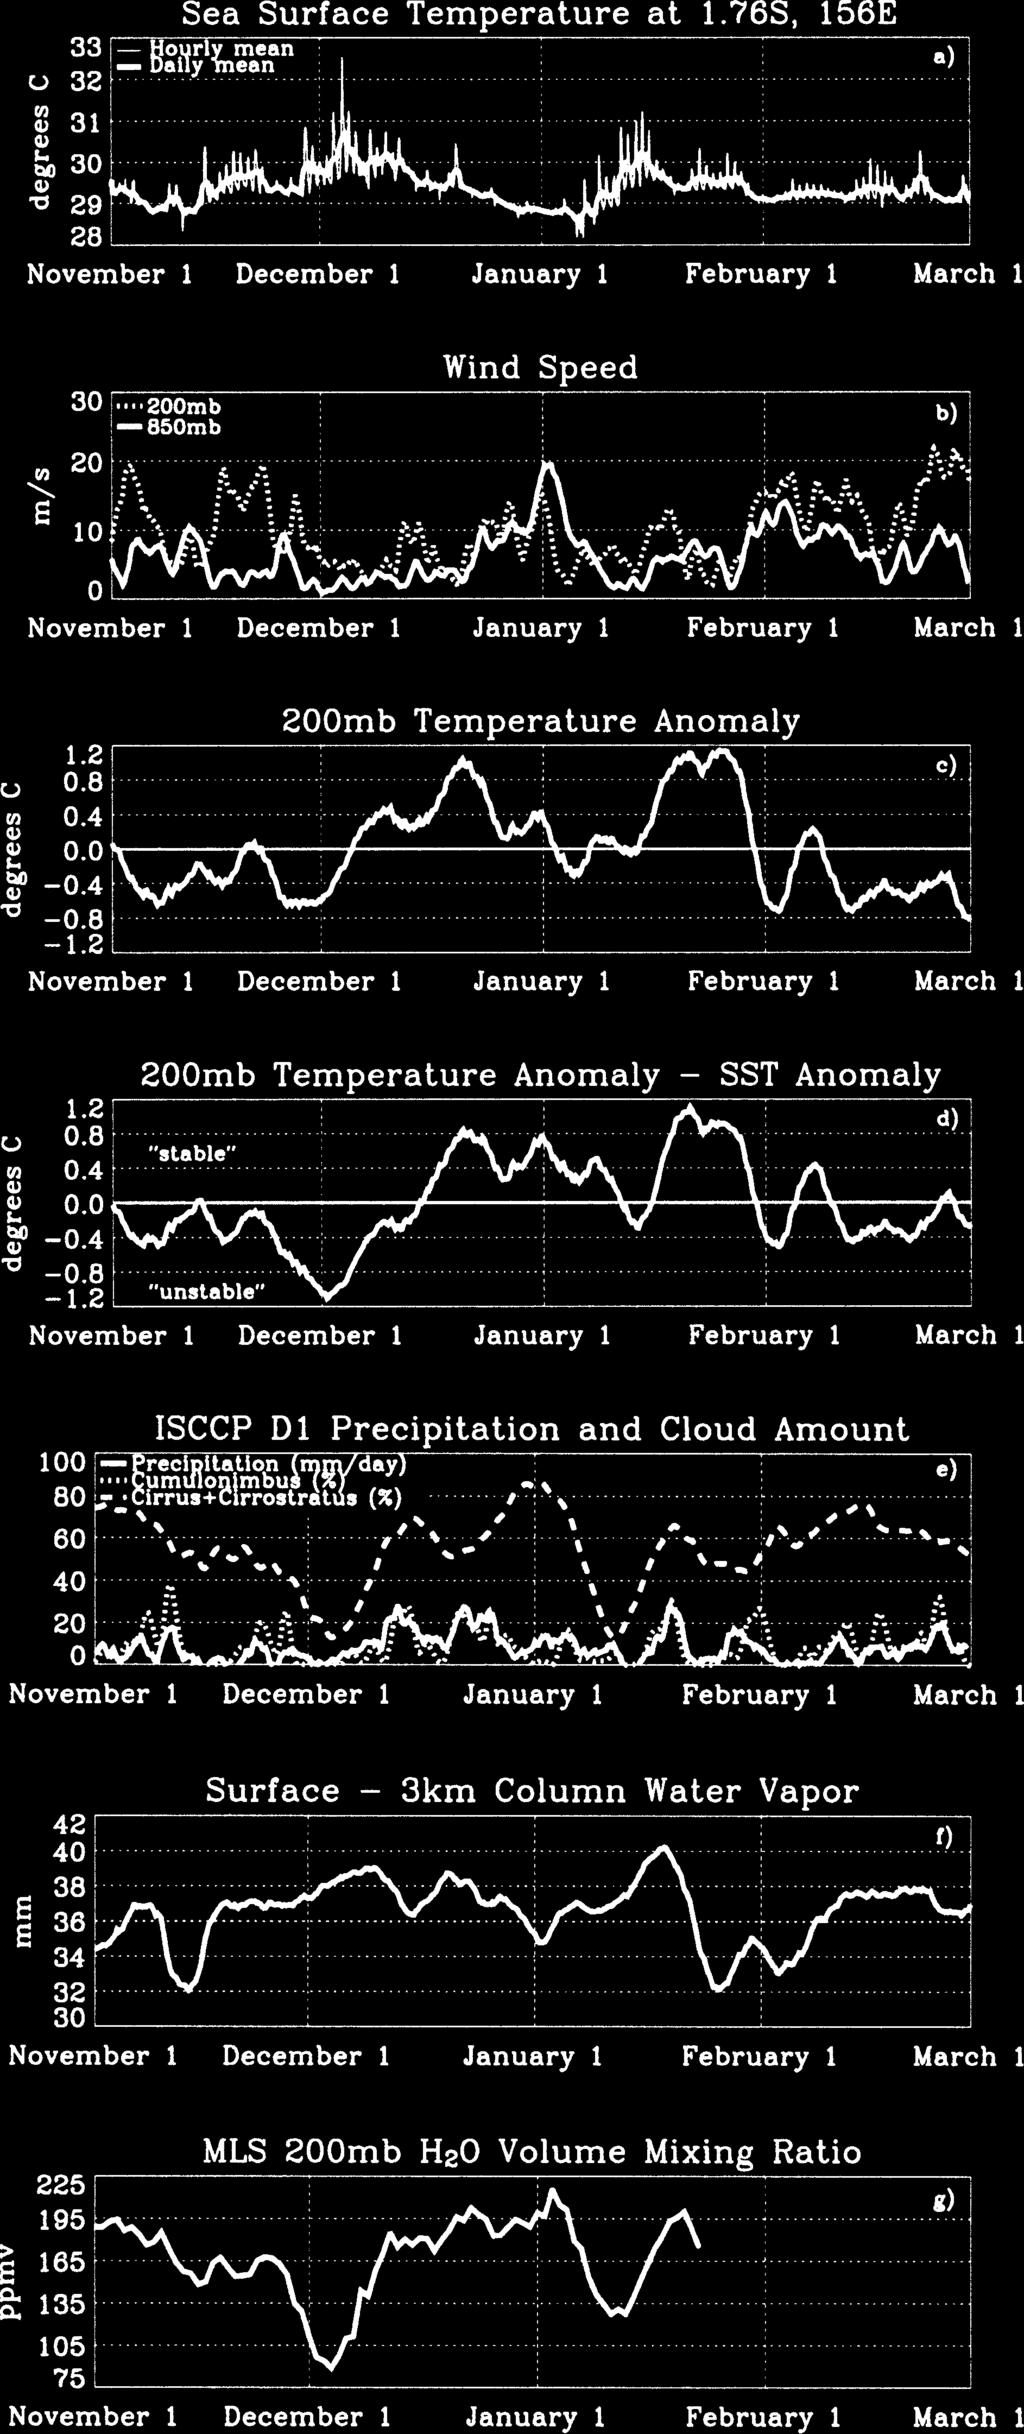 Figure 3a provides the time series of hourly SSTs obtained from the IMET buoy, as well as 24-h SST averages (Weller and Anderson 1996).